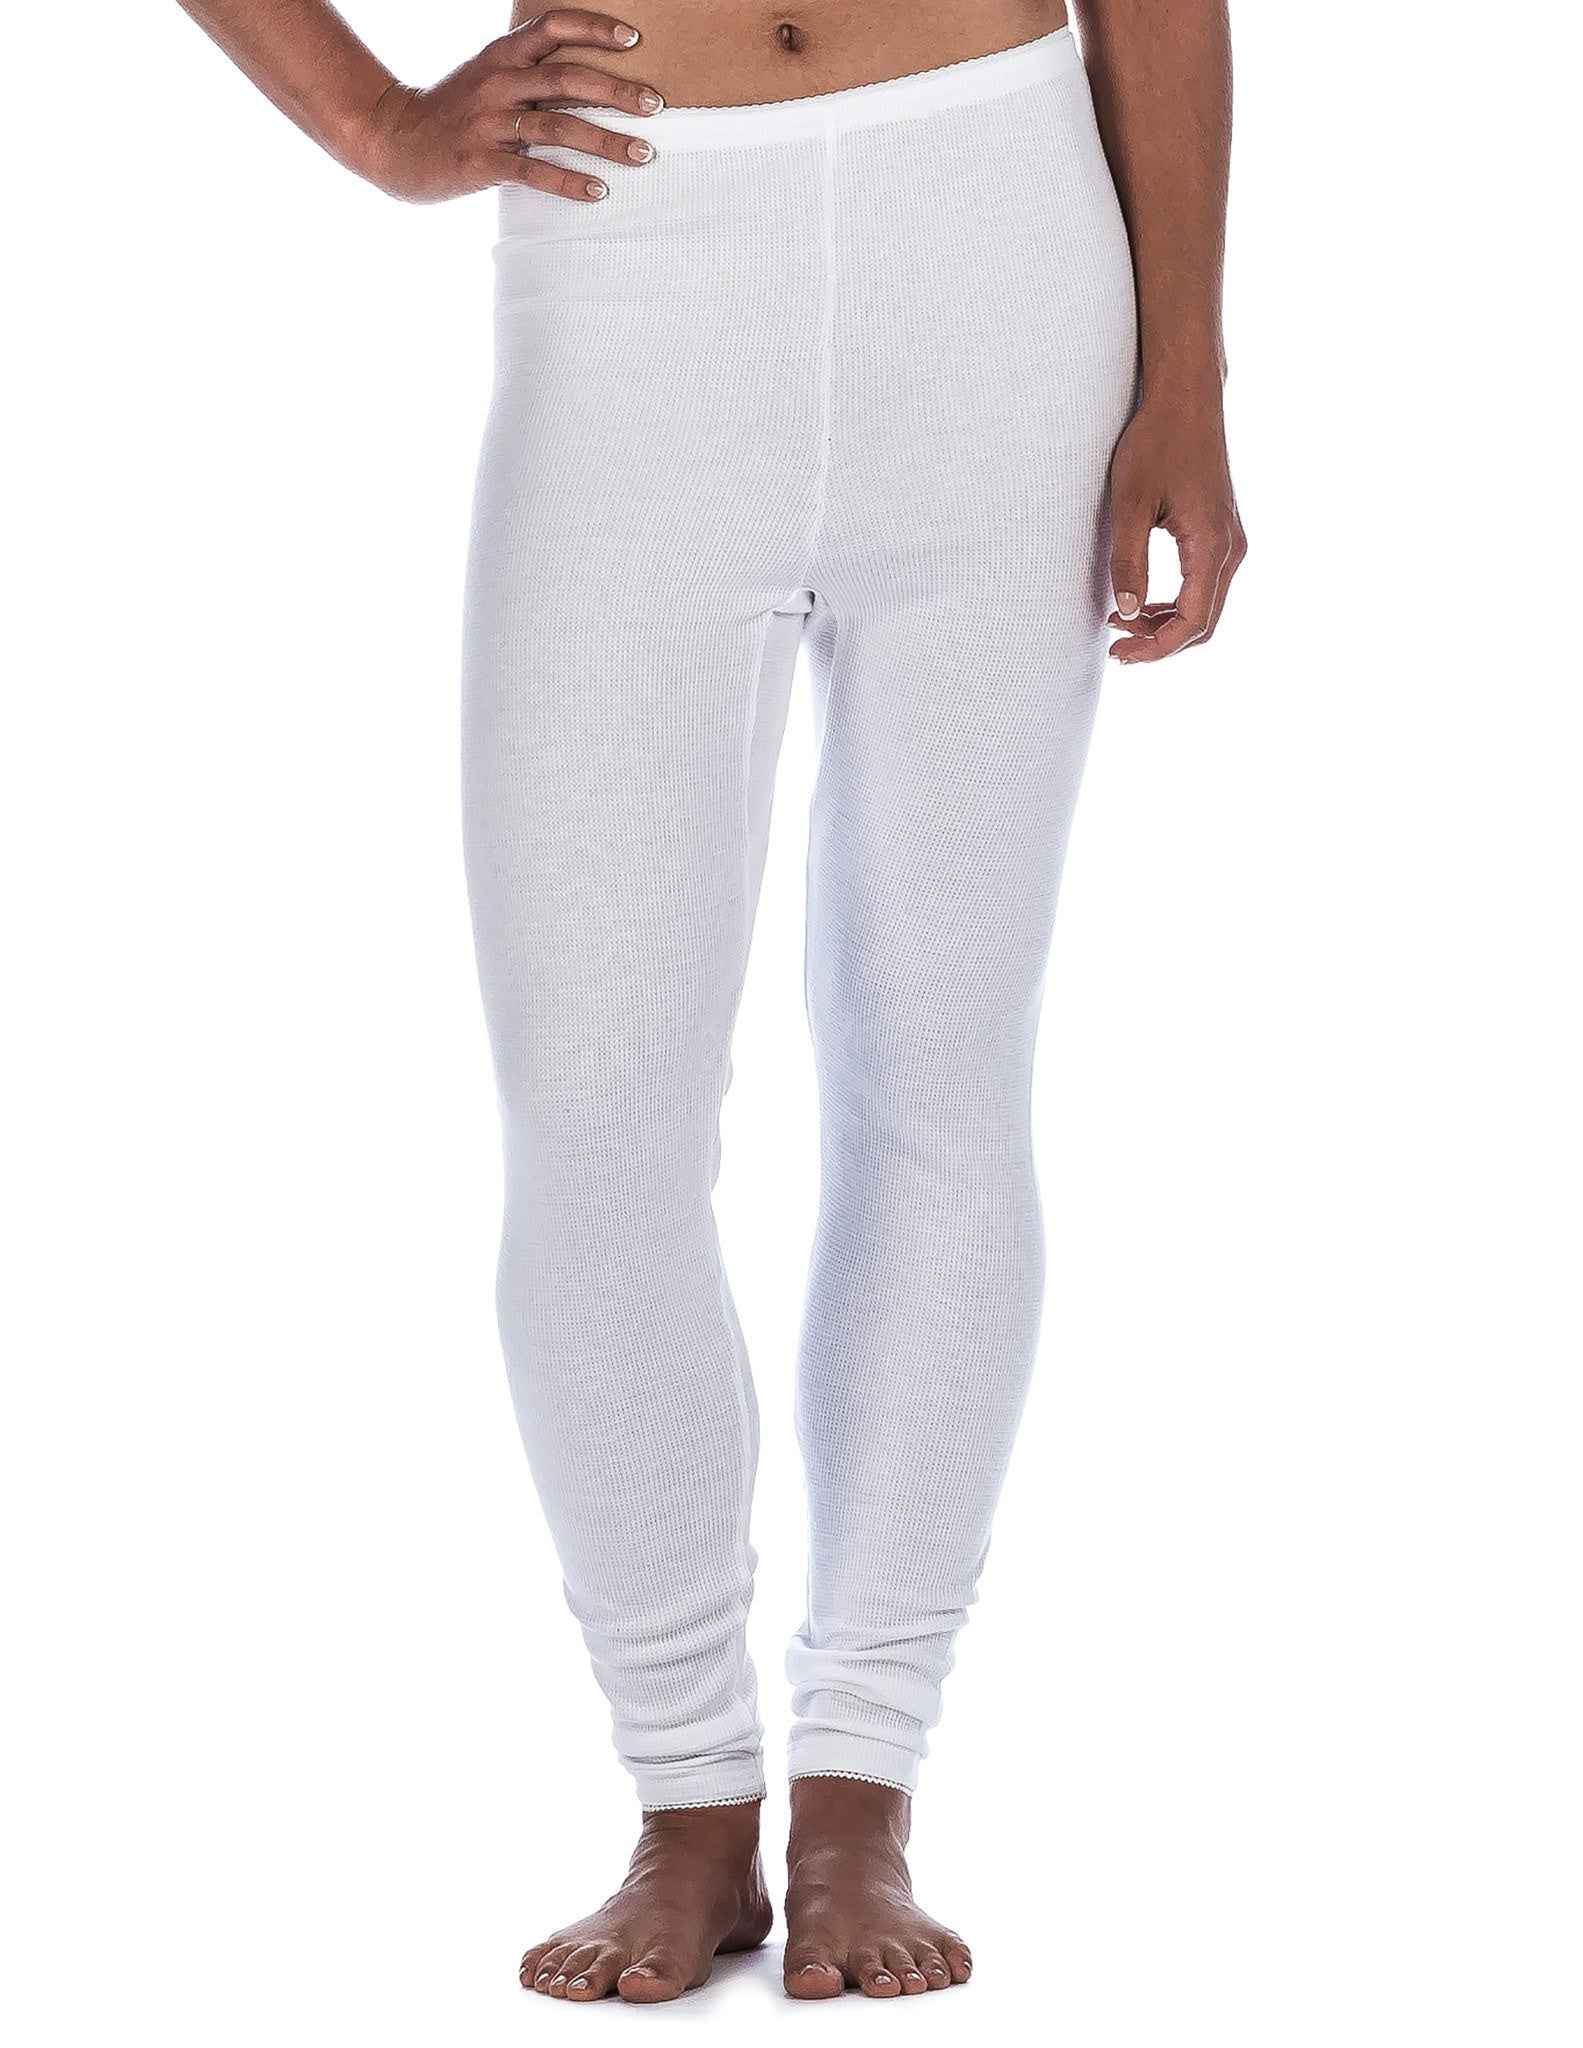 Women's Classic Waffle Knit Thermal Long John Pants